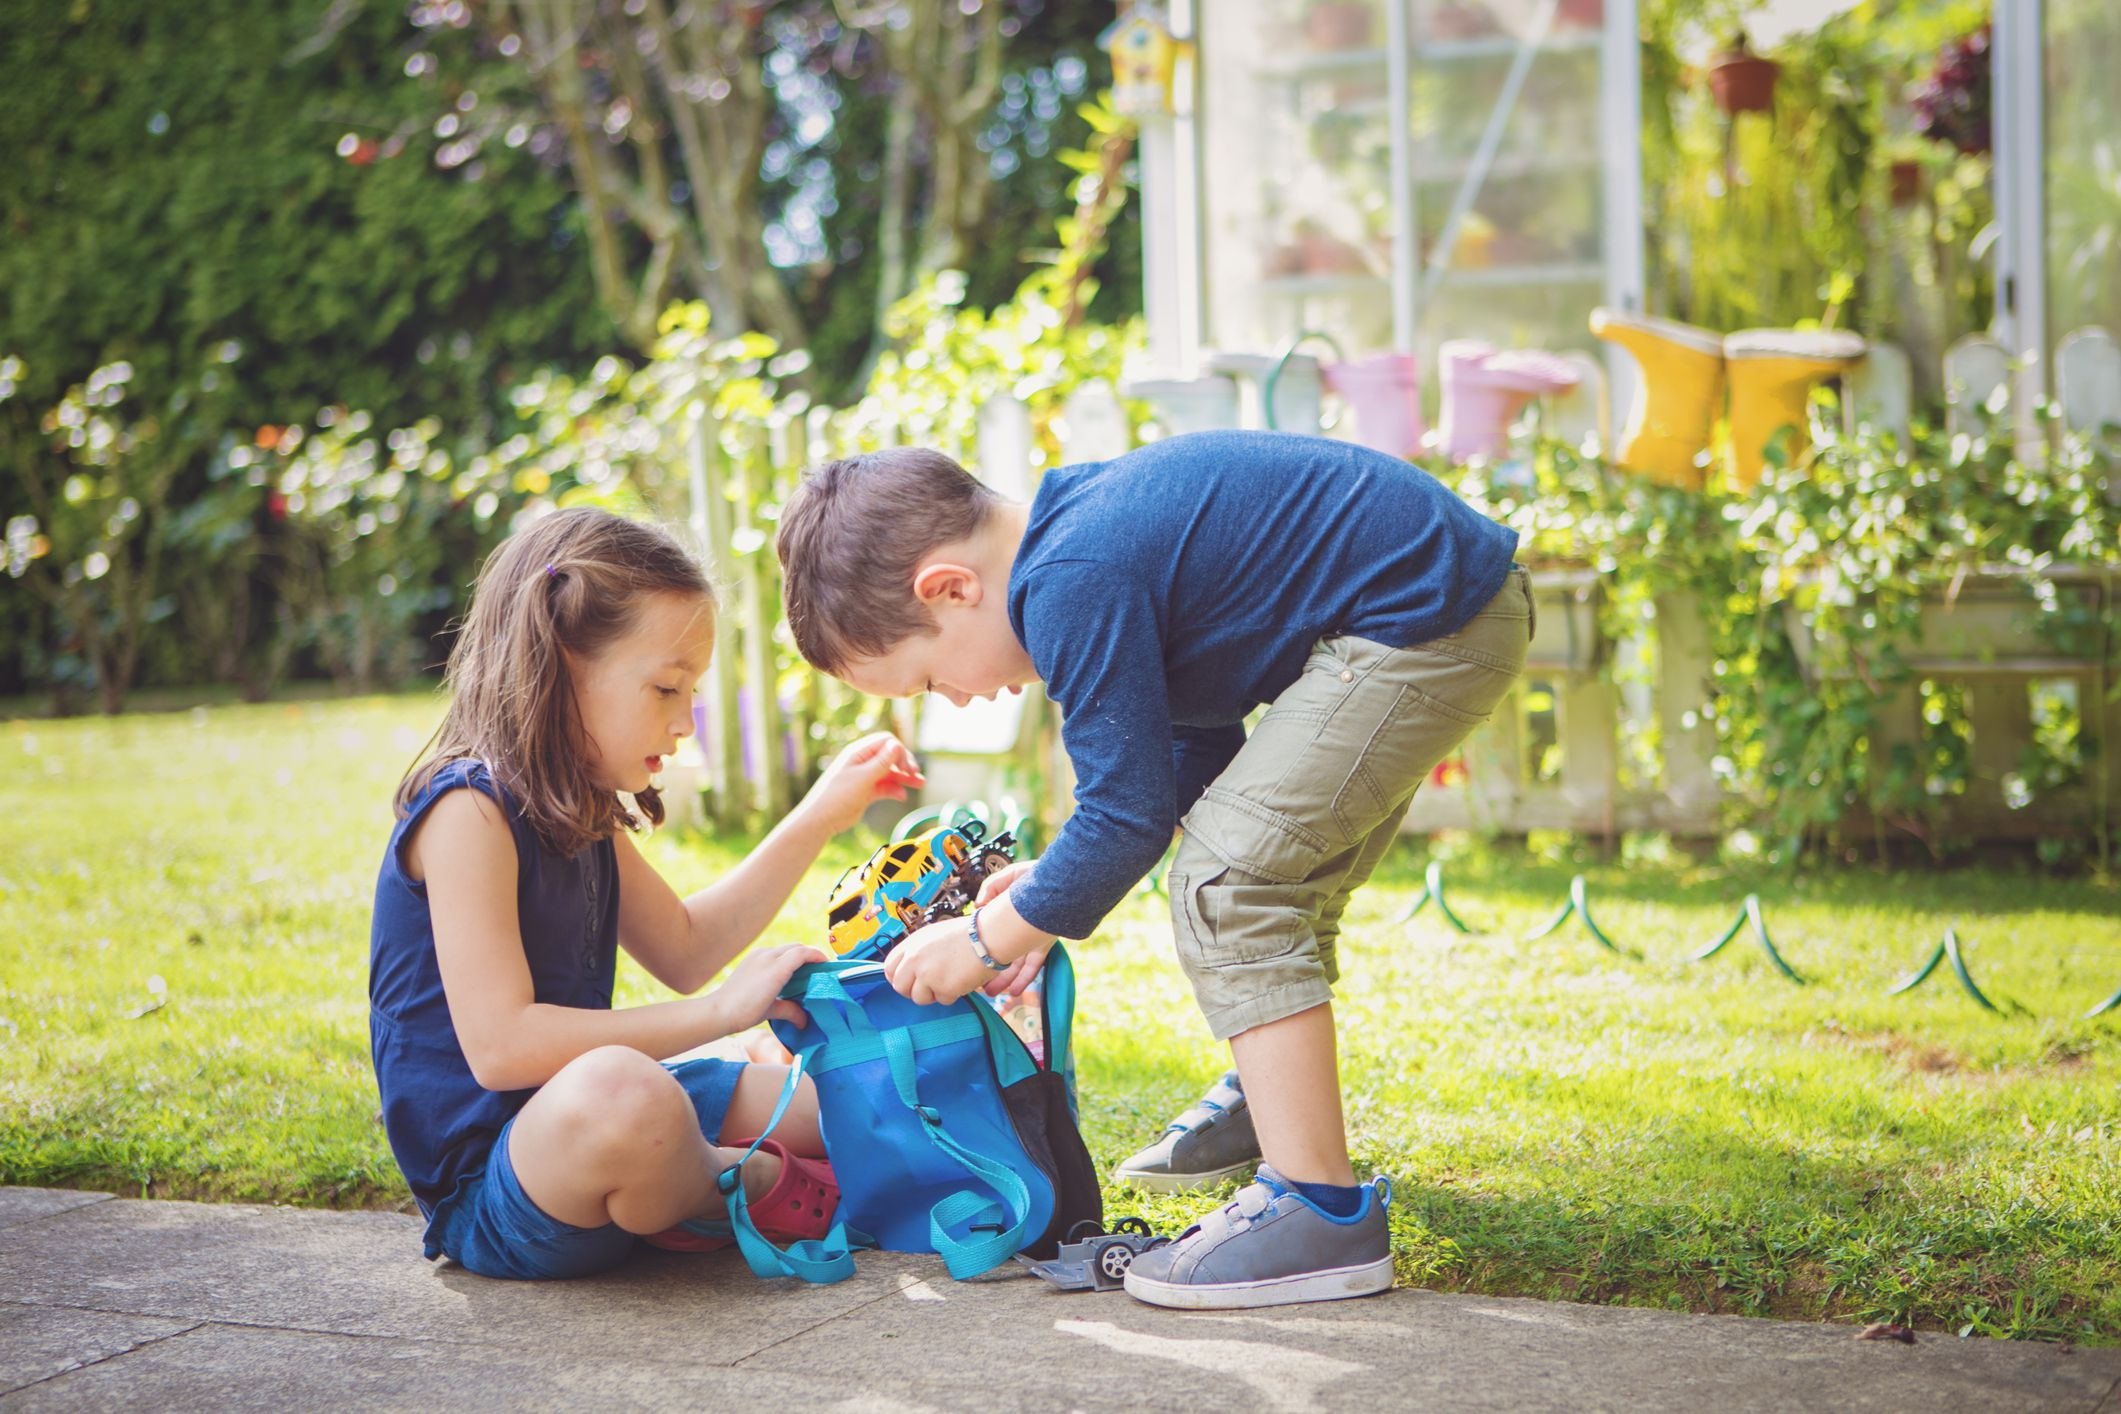 The 8 Best Outdoor Toys For 4-Year-Olds In 2020